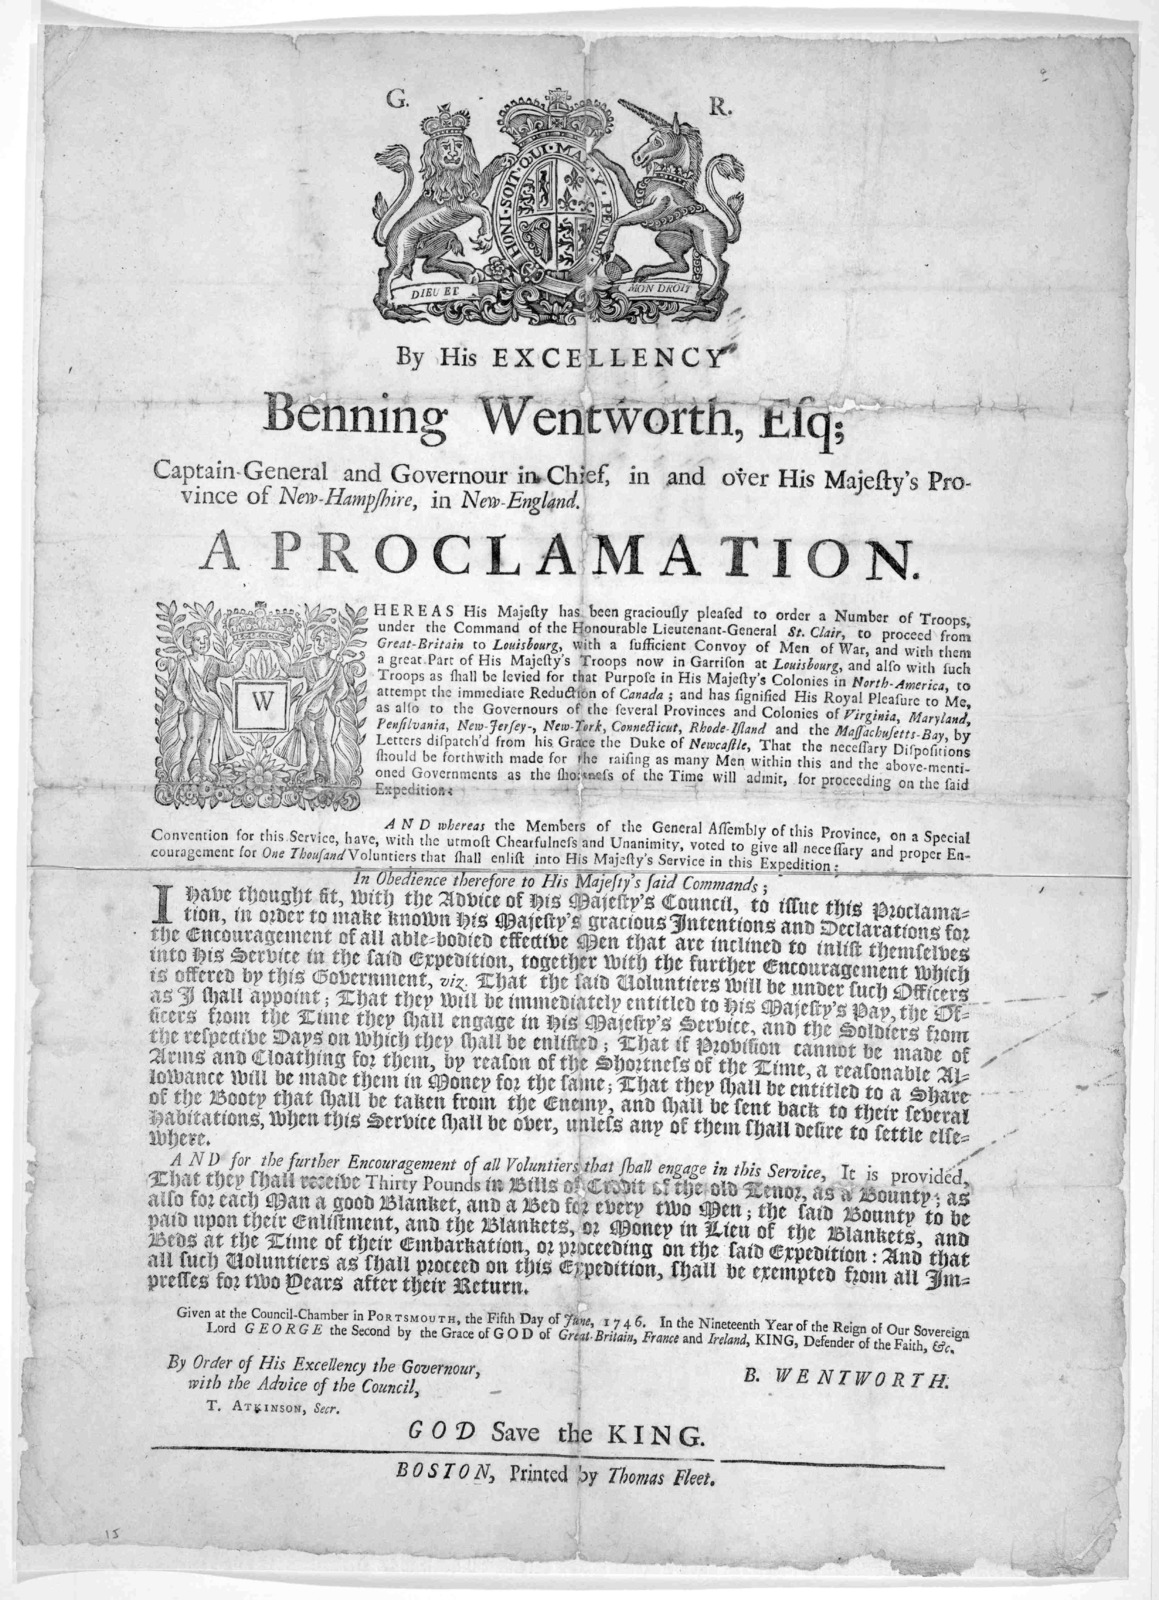 [Arms] By His Excellency Benning Wentworth Esq; Captain General and Governor in Chief, in and over His Majesty's Province of New-Hampshire in New-England. A proclamation. Whereas His Majesty has been graciously pleased to order a number of troop